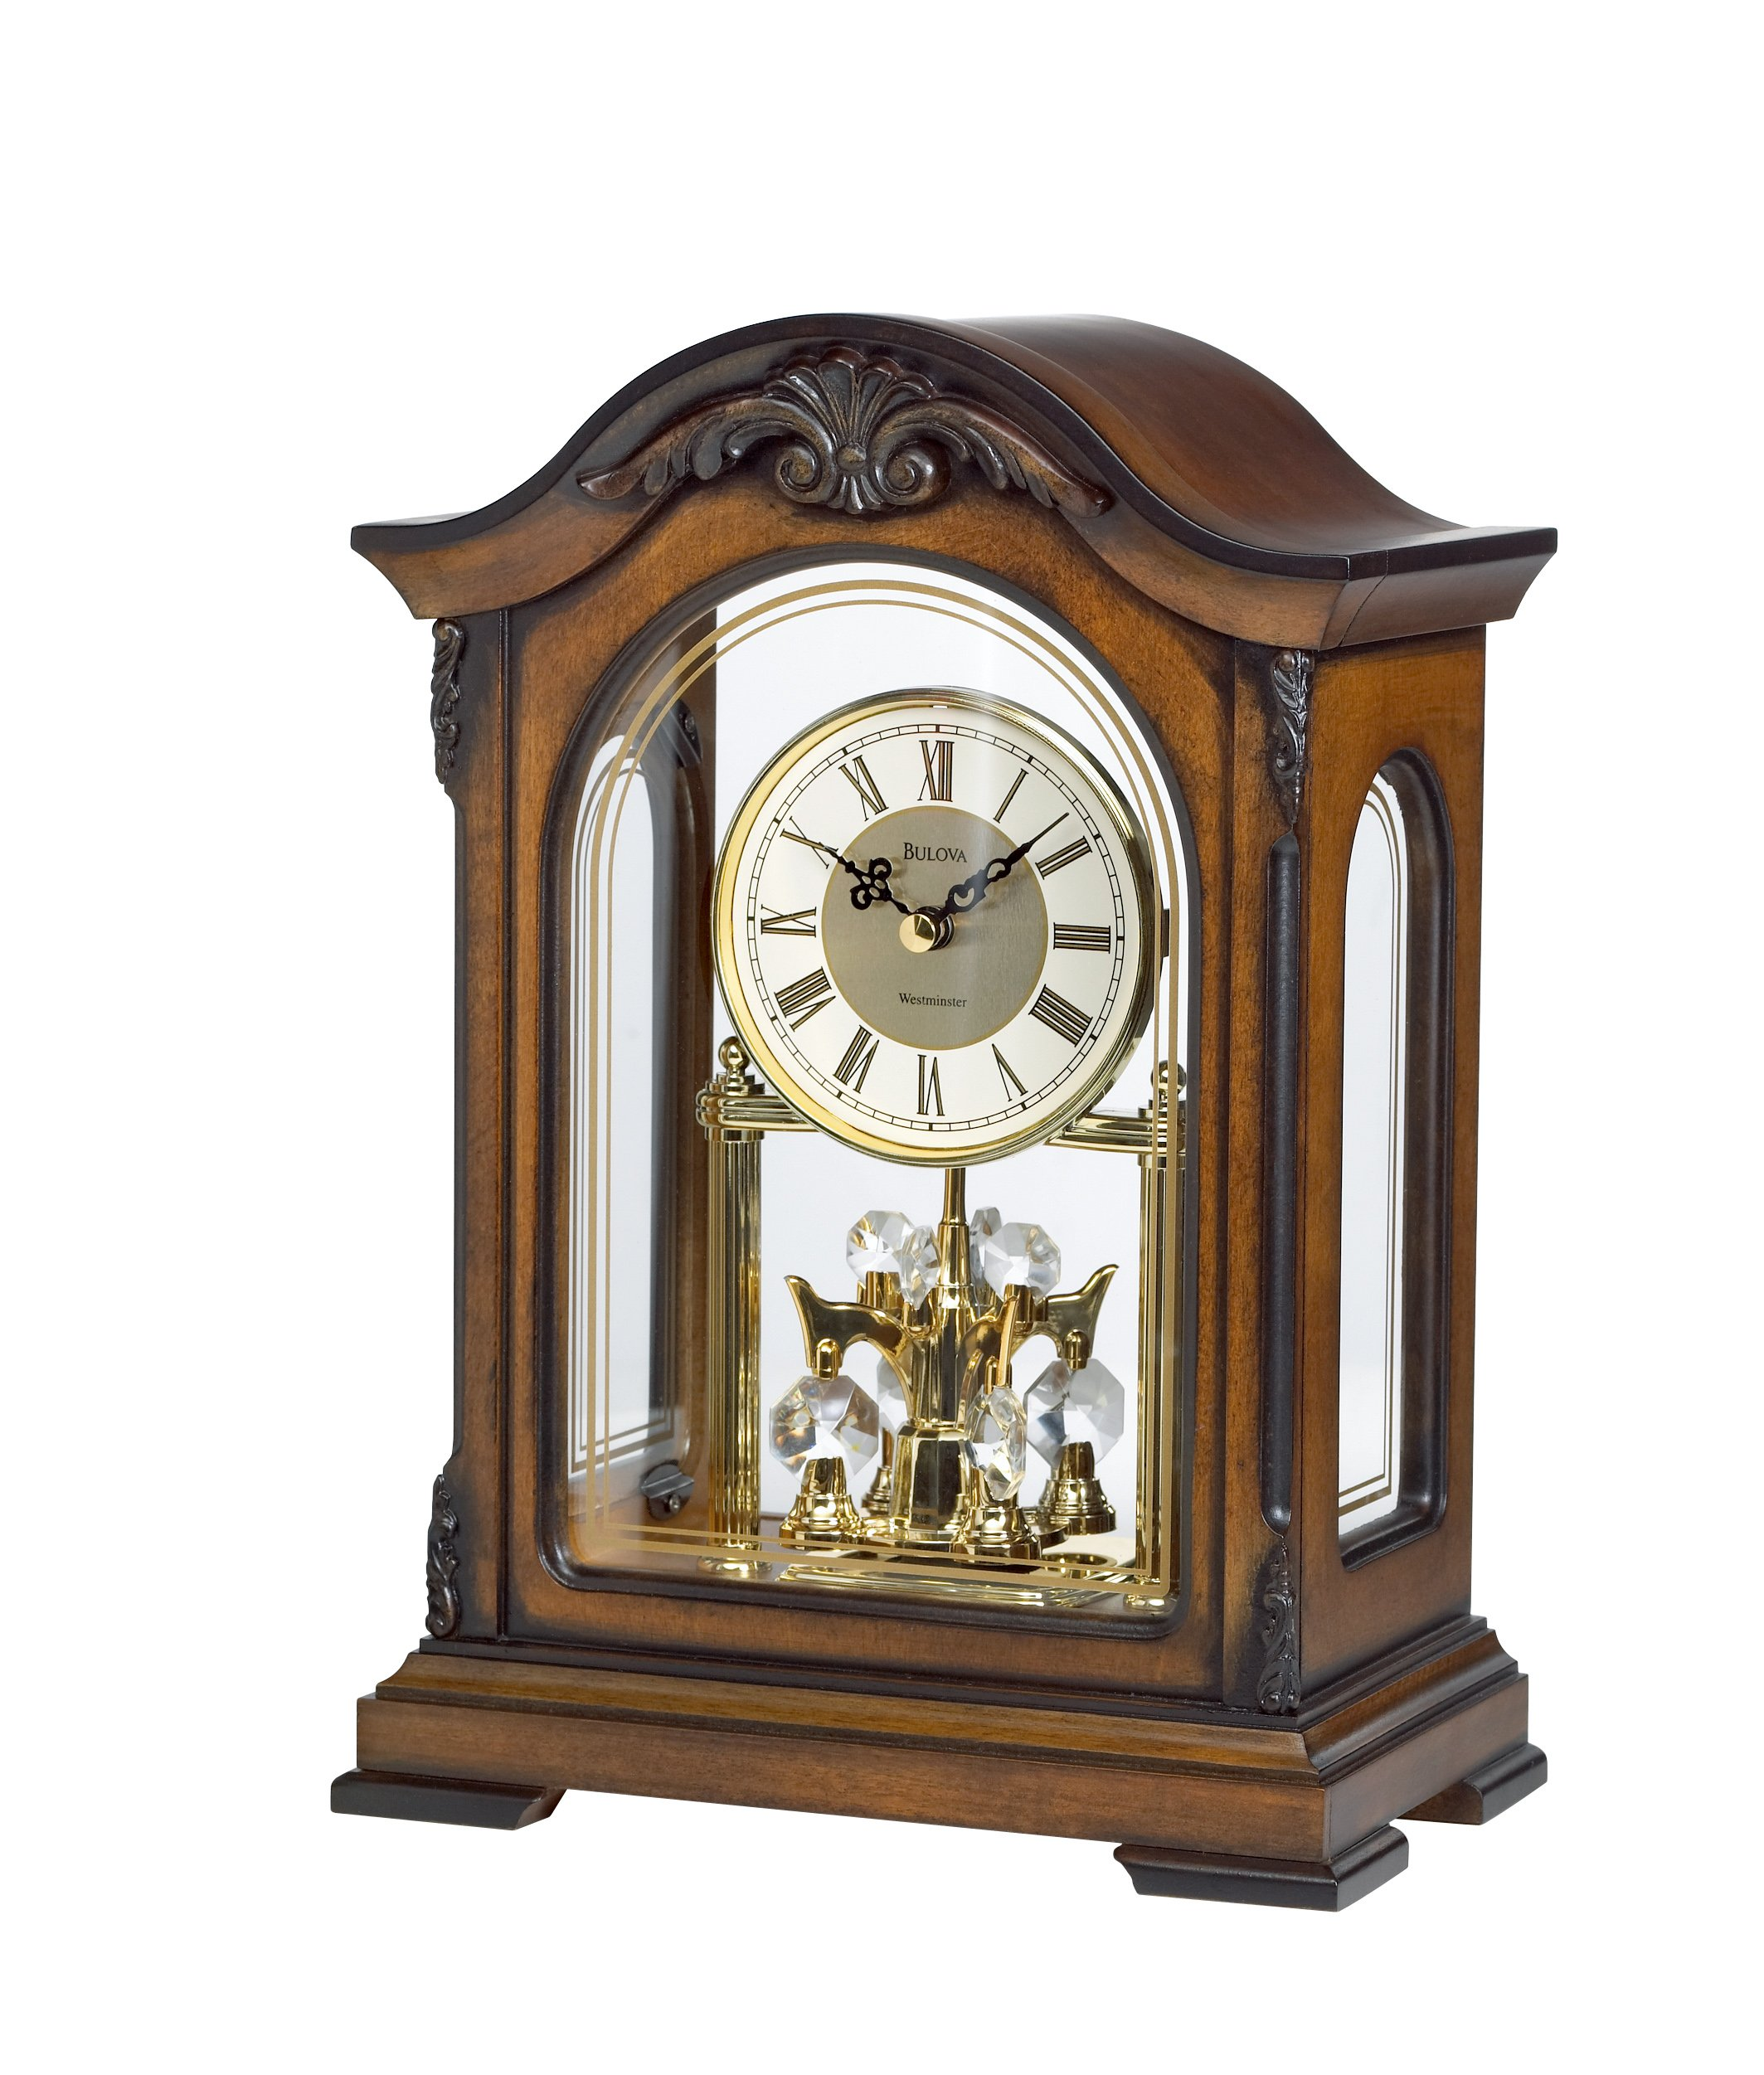 Bulova B1845 Durant Old World Clock image